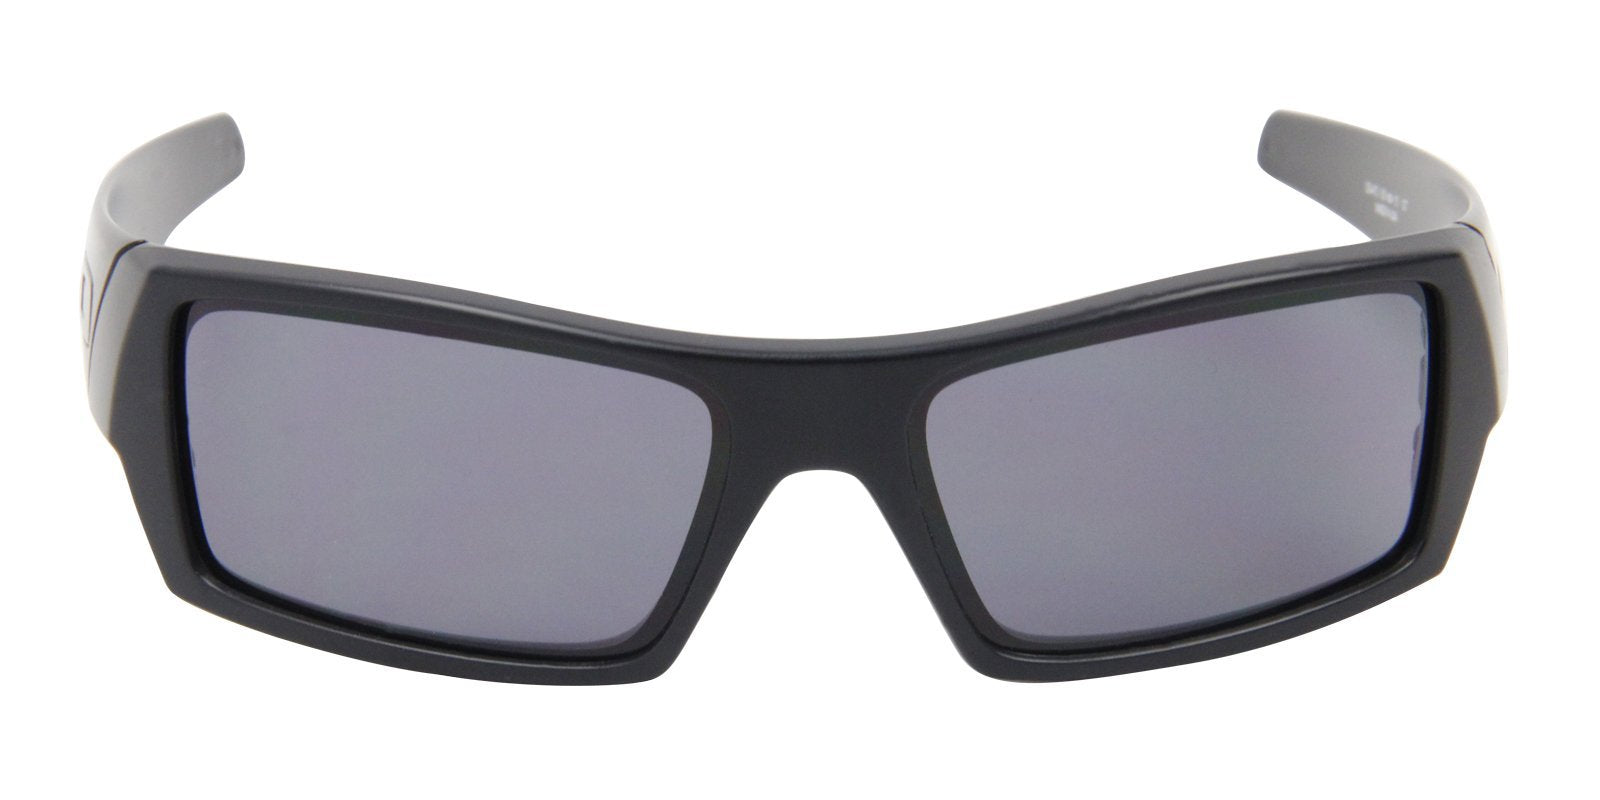 Oakley - Gascan Black/Gray Rectangular Men Sunglasses - 60mm-Sunglasses-Designer Eyes